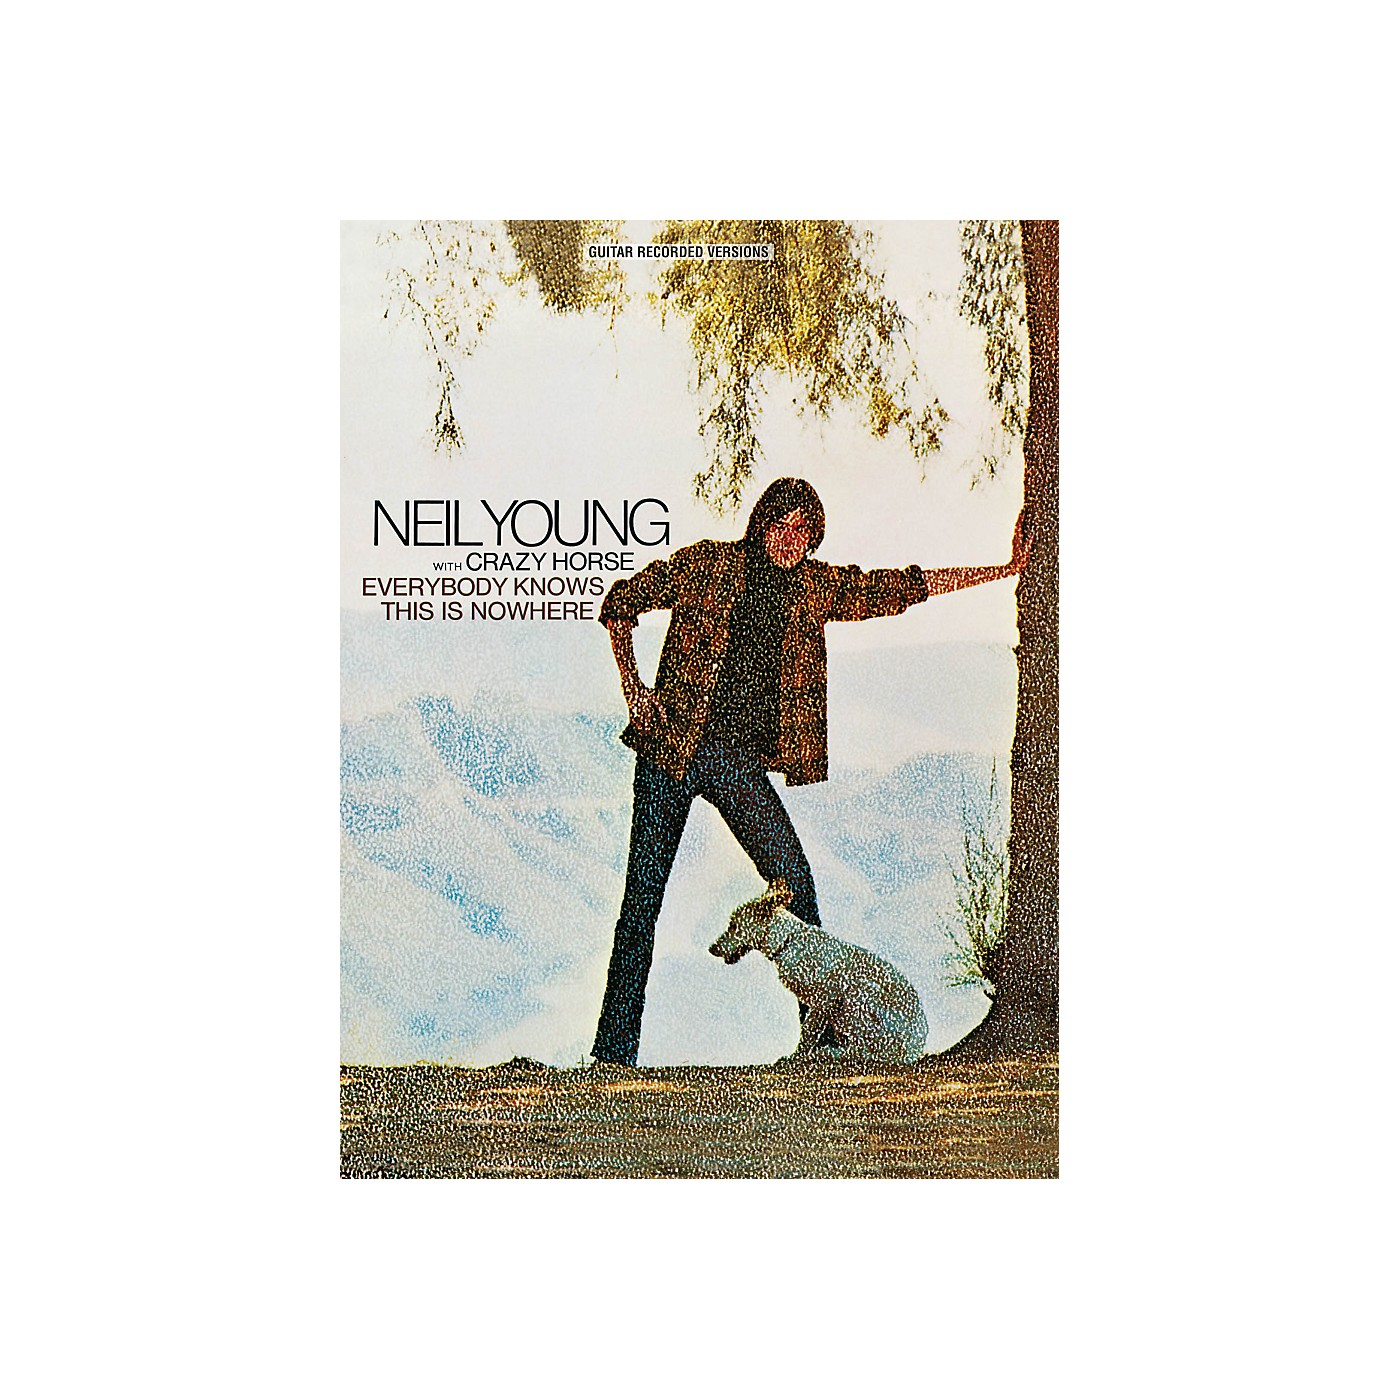 Hal Leonard Neil Young - Everybody Knows This Is Nowhere Guitar Tab Songbook thumbnail